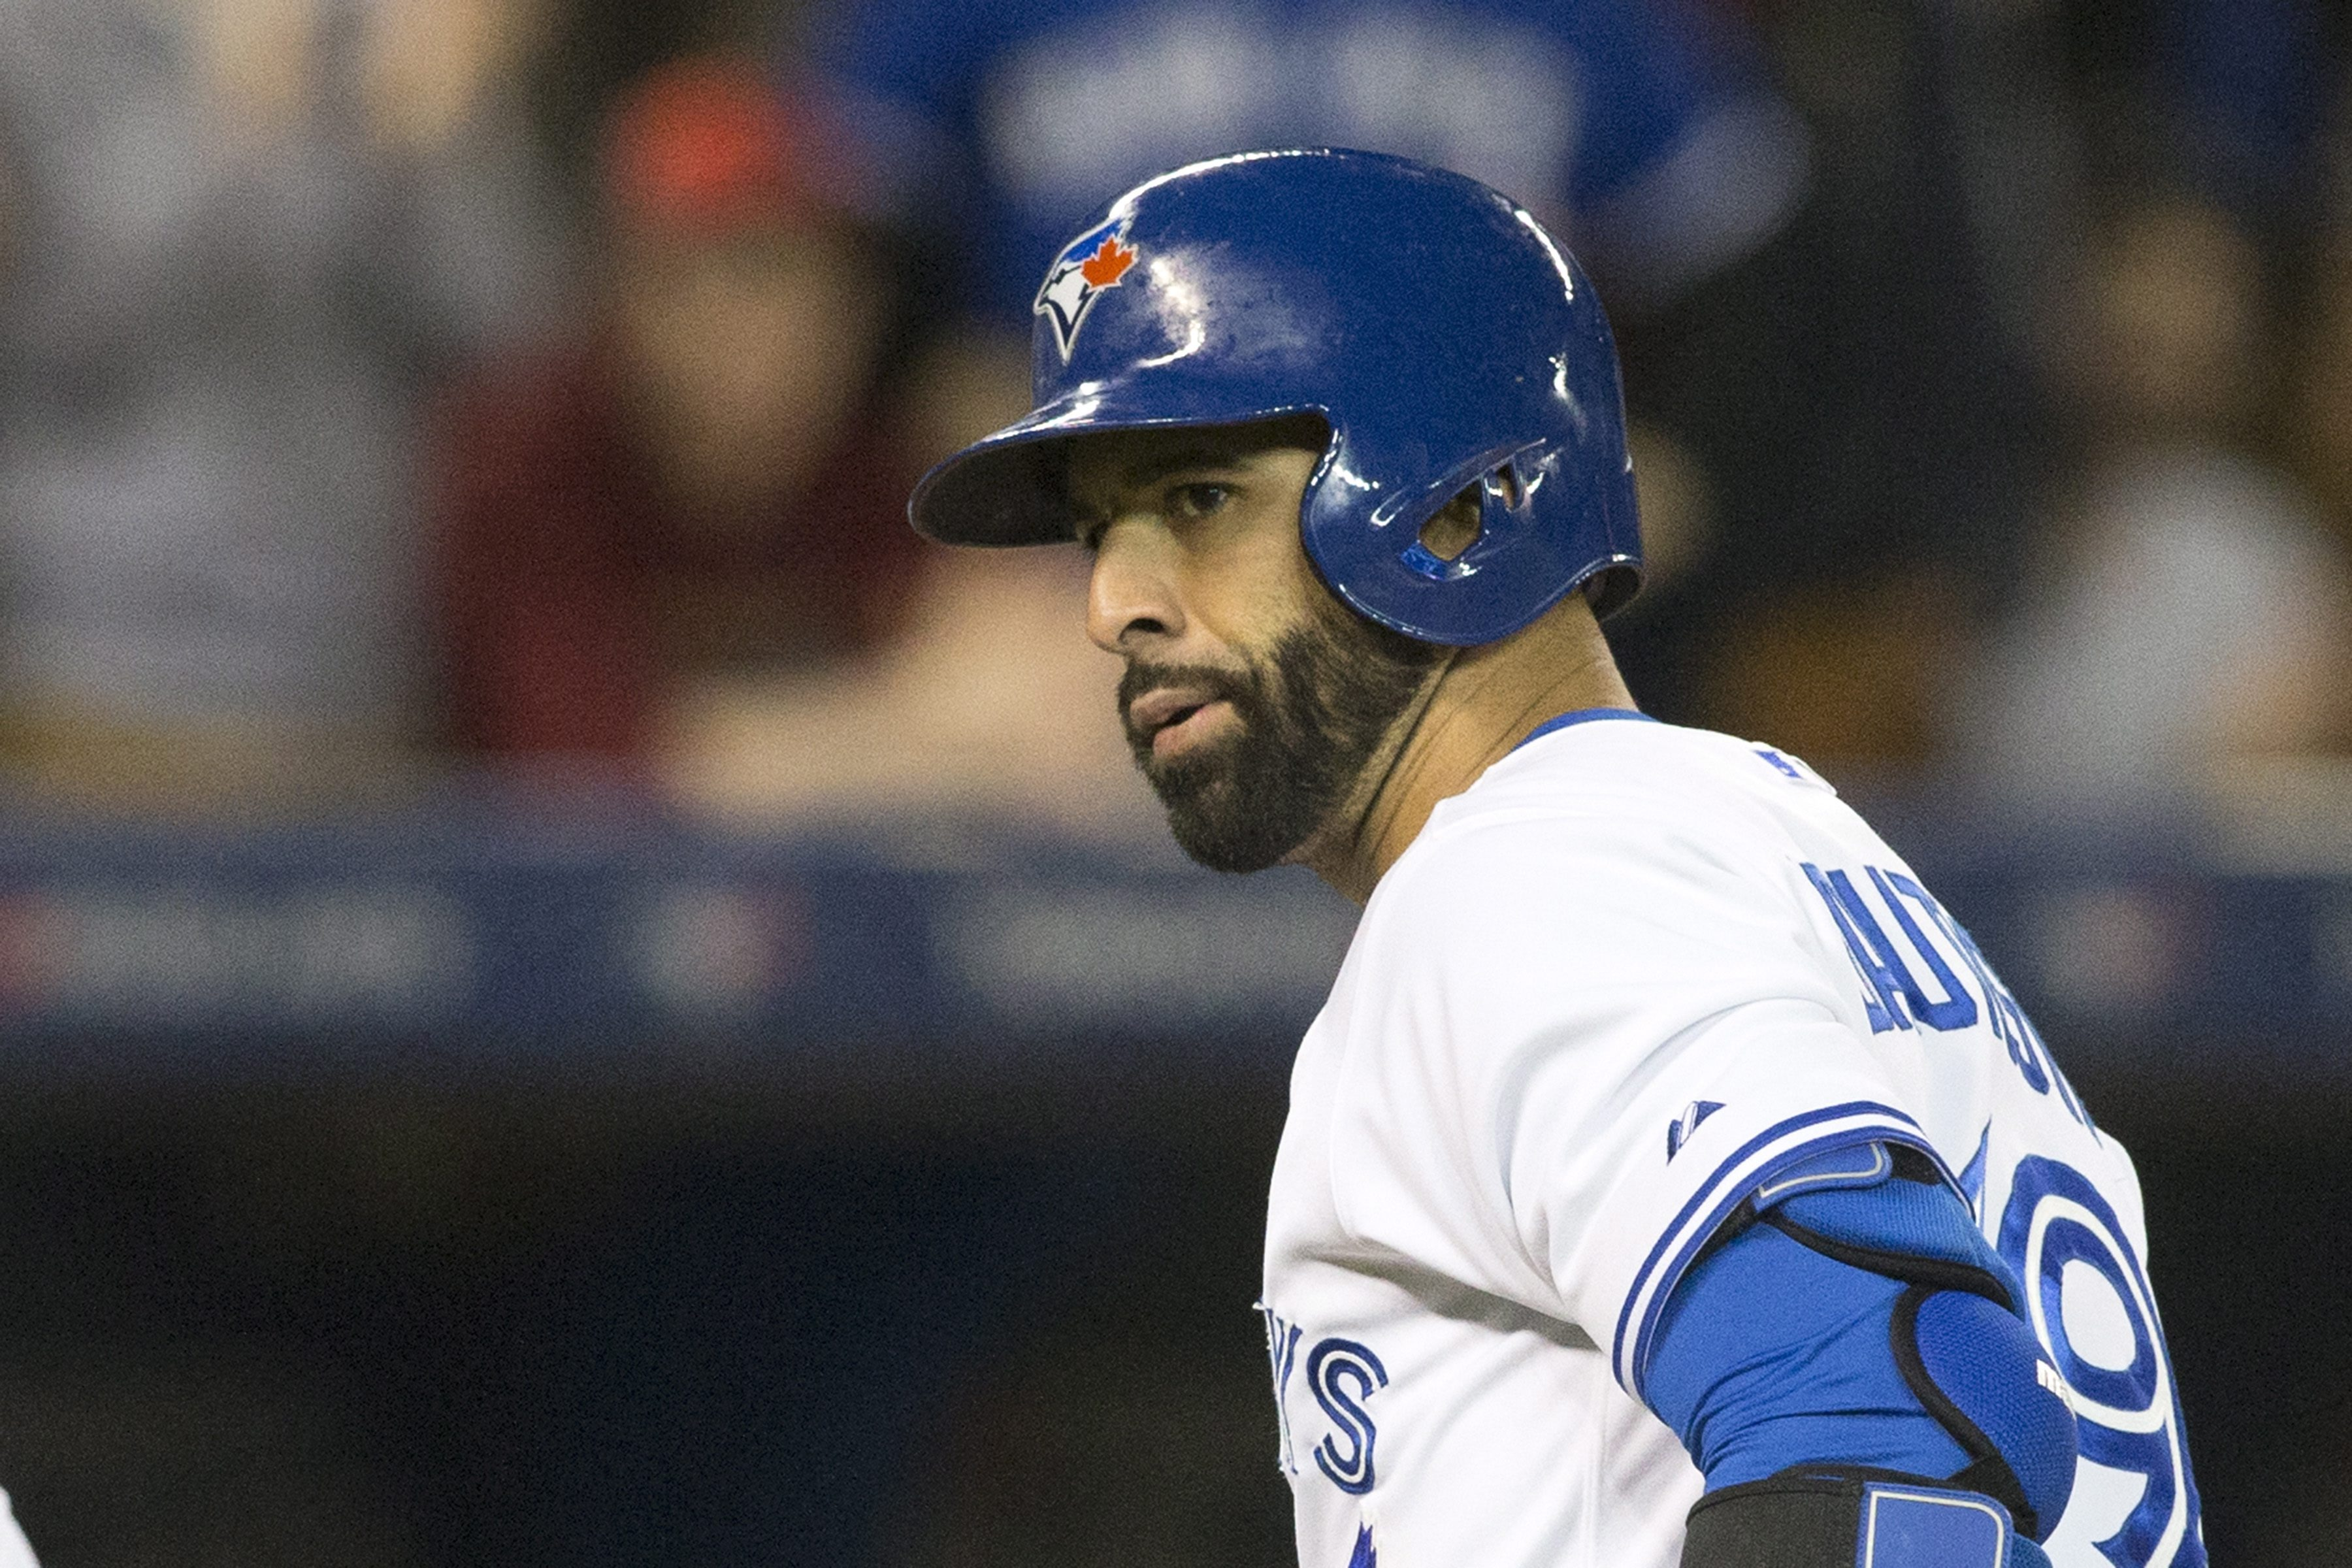 Toronto Blue Jays Jose Bautista looks over at the Baltimore Orioles bench after hitting a two-run home run during the seventh inning of a baseball game Tuesday, April 21, 2015, in Toronto. (Chris Young/The Canadian Press via AP)